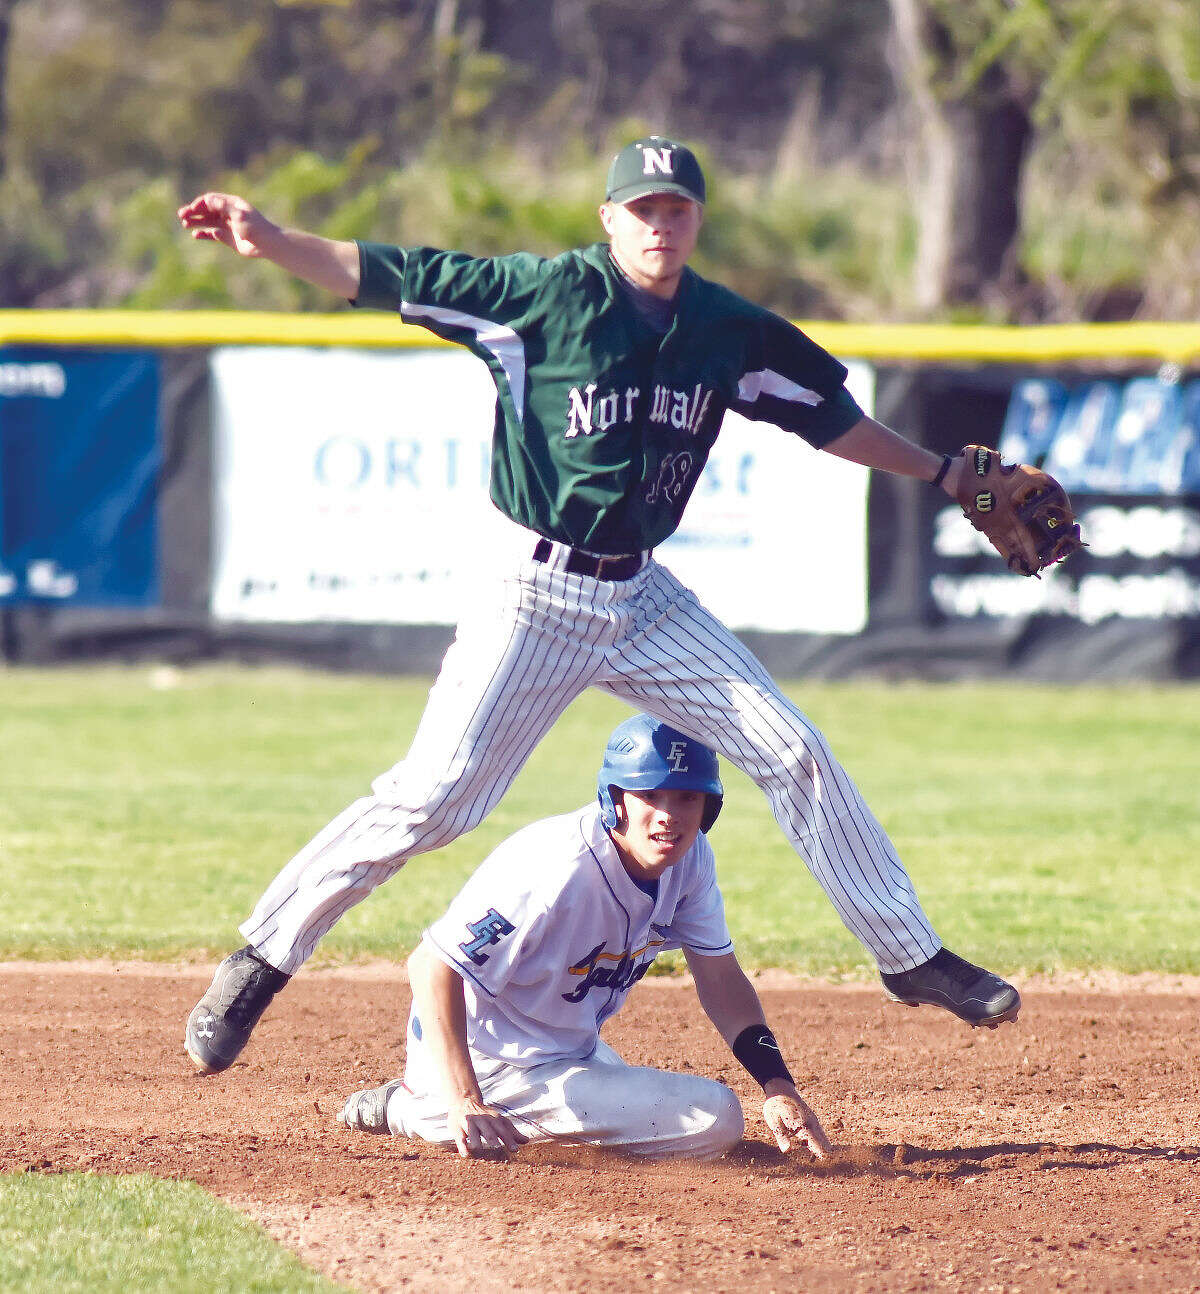 Hour photo/John Nash - Norwalk second baseman David Balunek, top, watches his throw to first as the Bears turned a double play against Fairfield Ludlowe on Friday.